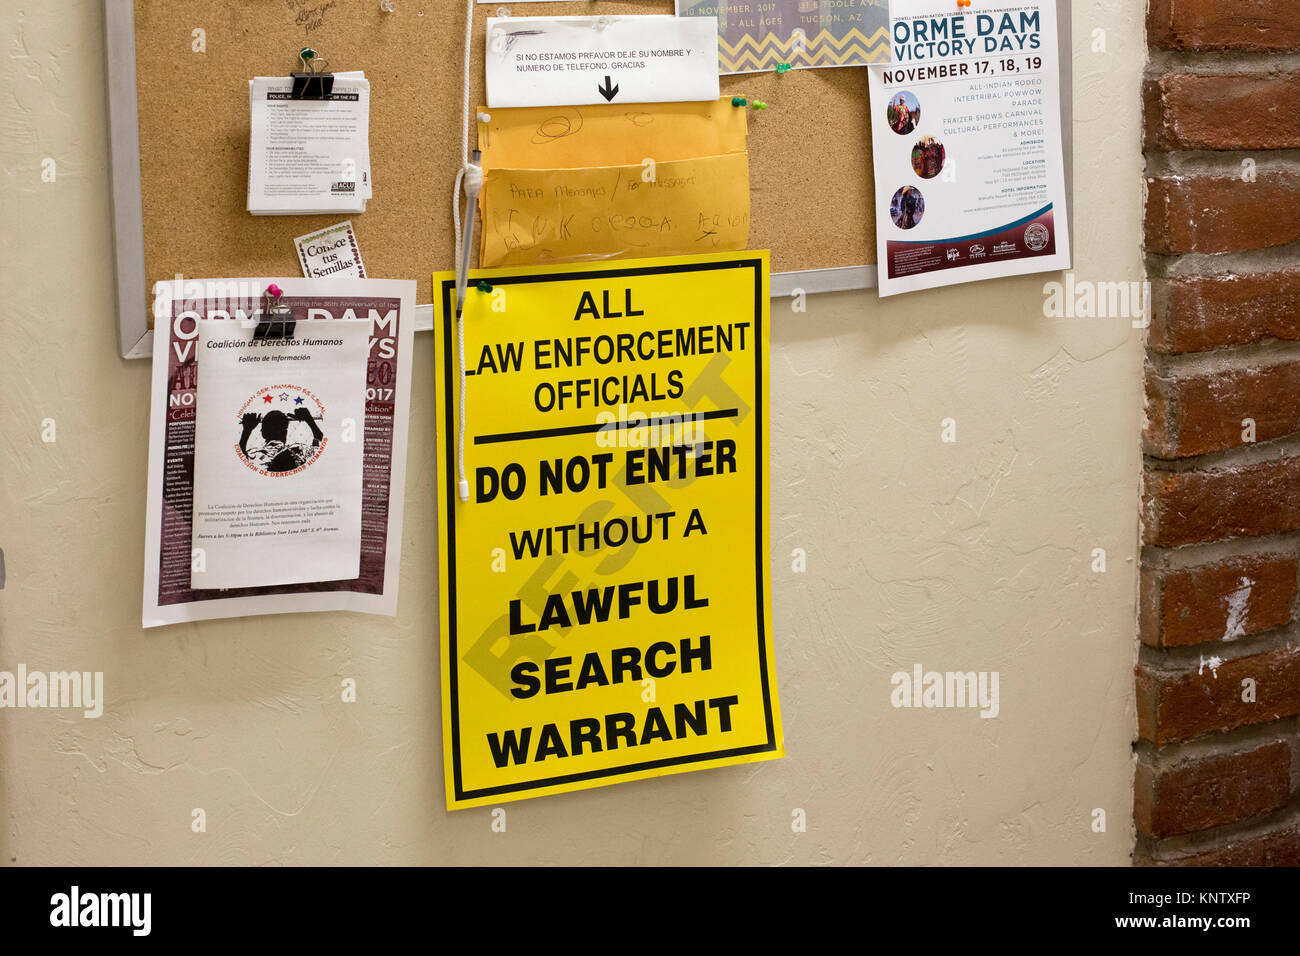 Tucson, Arizona - A sign at the office of the Coalición de Derechos Humanos warns law enforcement officers - Stock Image